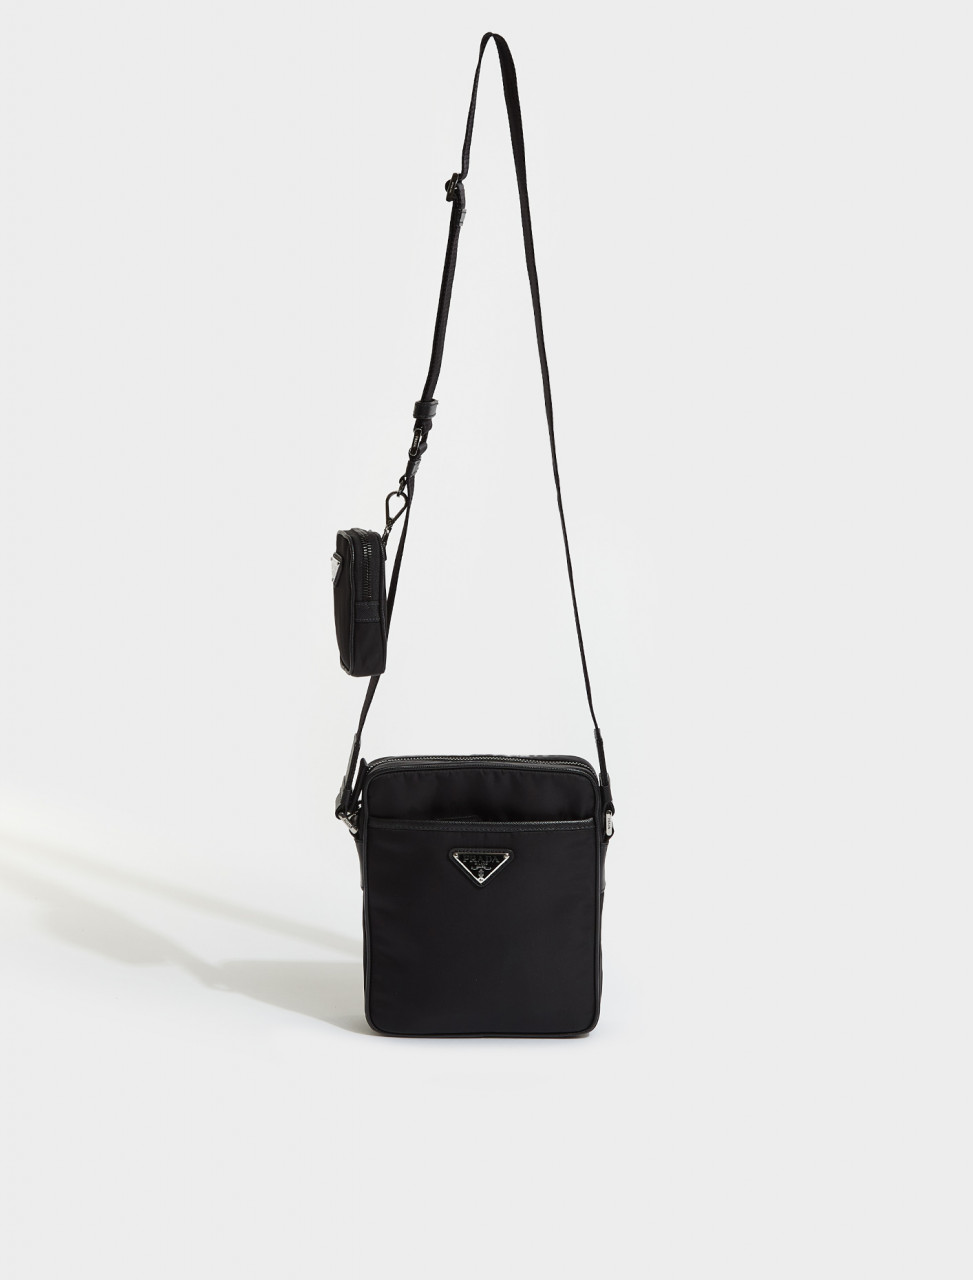 2VH112-F0002 PRADA RE-NYLON SAFFIANO LEATHER SHOULDER BAG BLACK